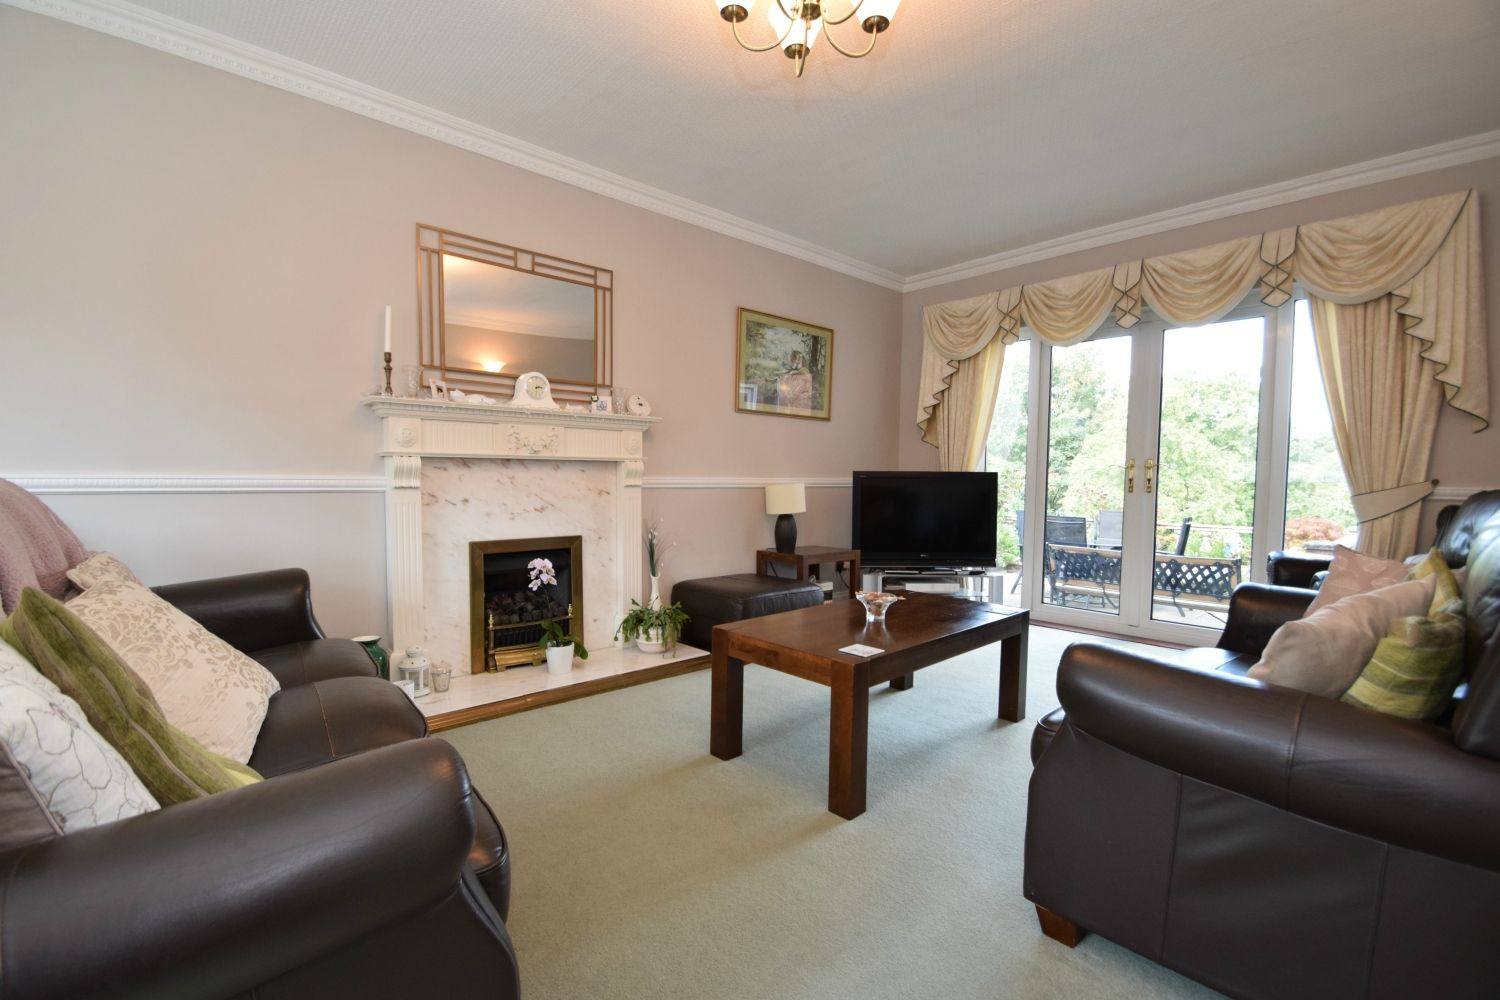 3 bed detached for sale in Reservoir Road, Cofton Hackett  - Property Image 2